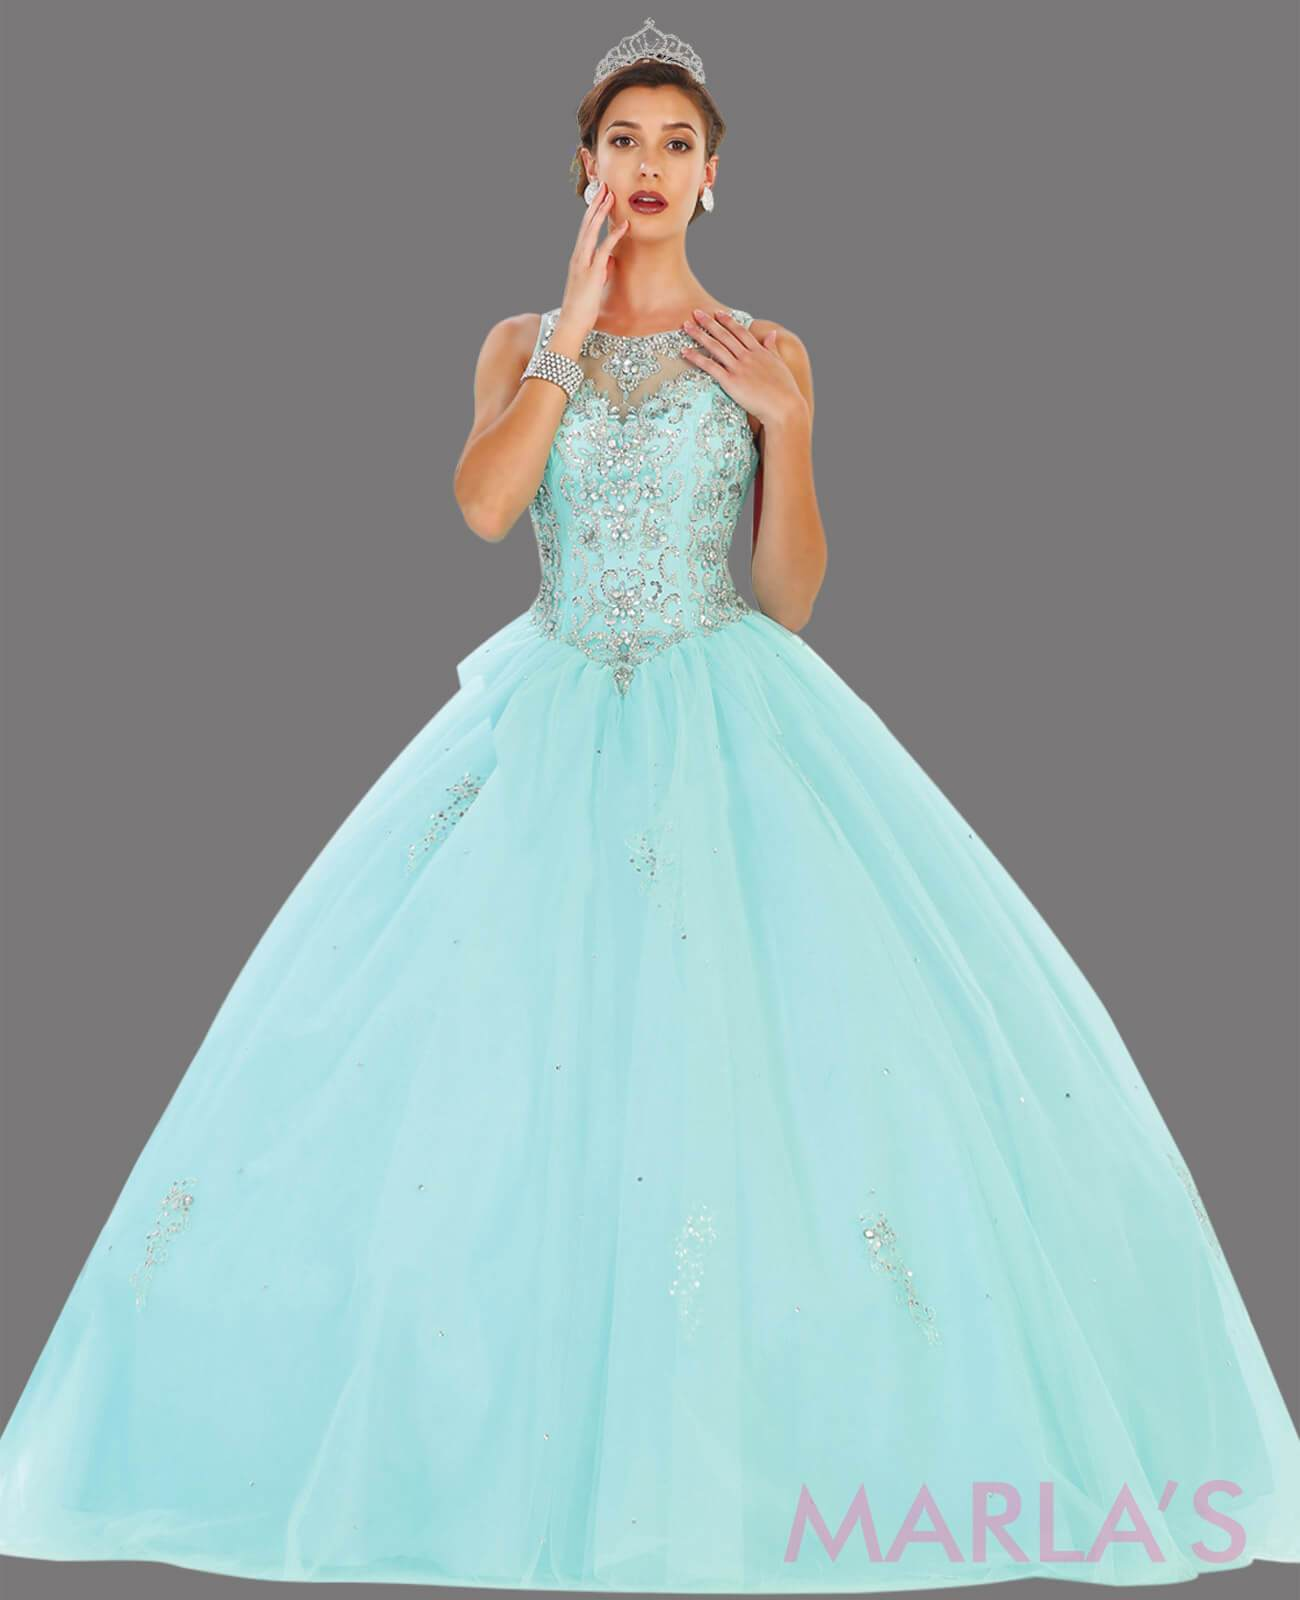 76.13L-Long aqua princess ball gown with gold lace trim and shrug Perfect for Engagement dress, Quinceanera, Sweet 16, Swet 15 and light blue Wedding Reception Dress. Available in plus sizes